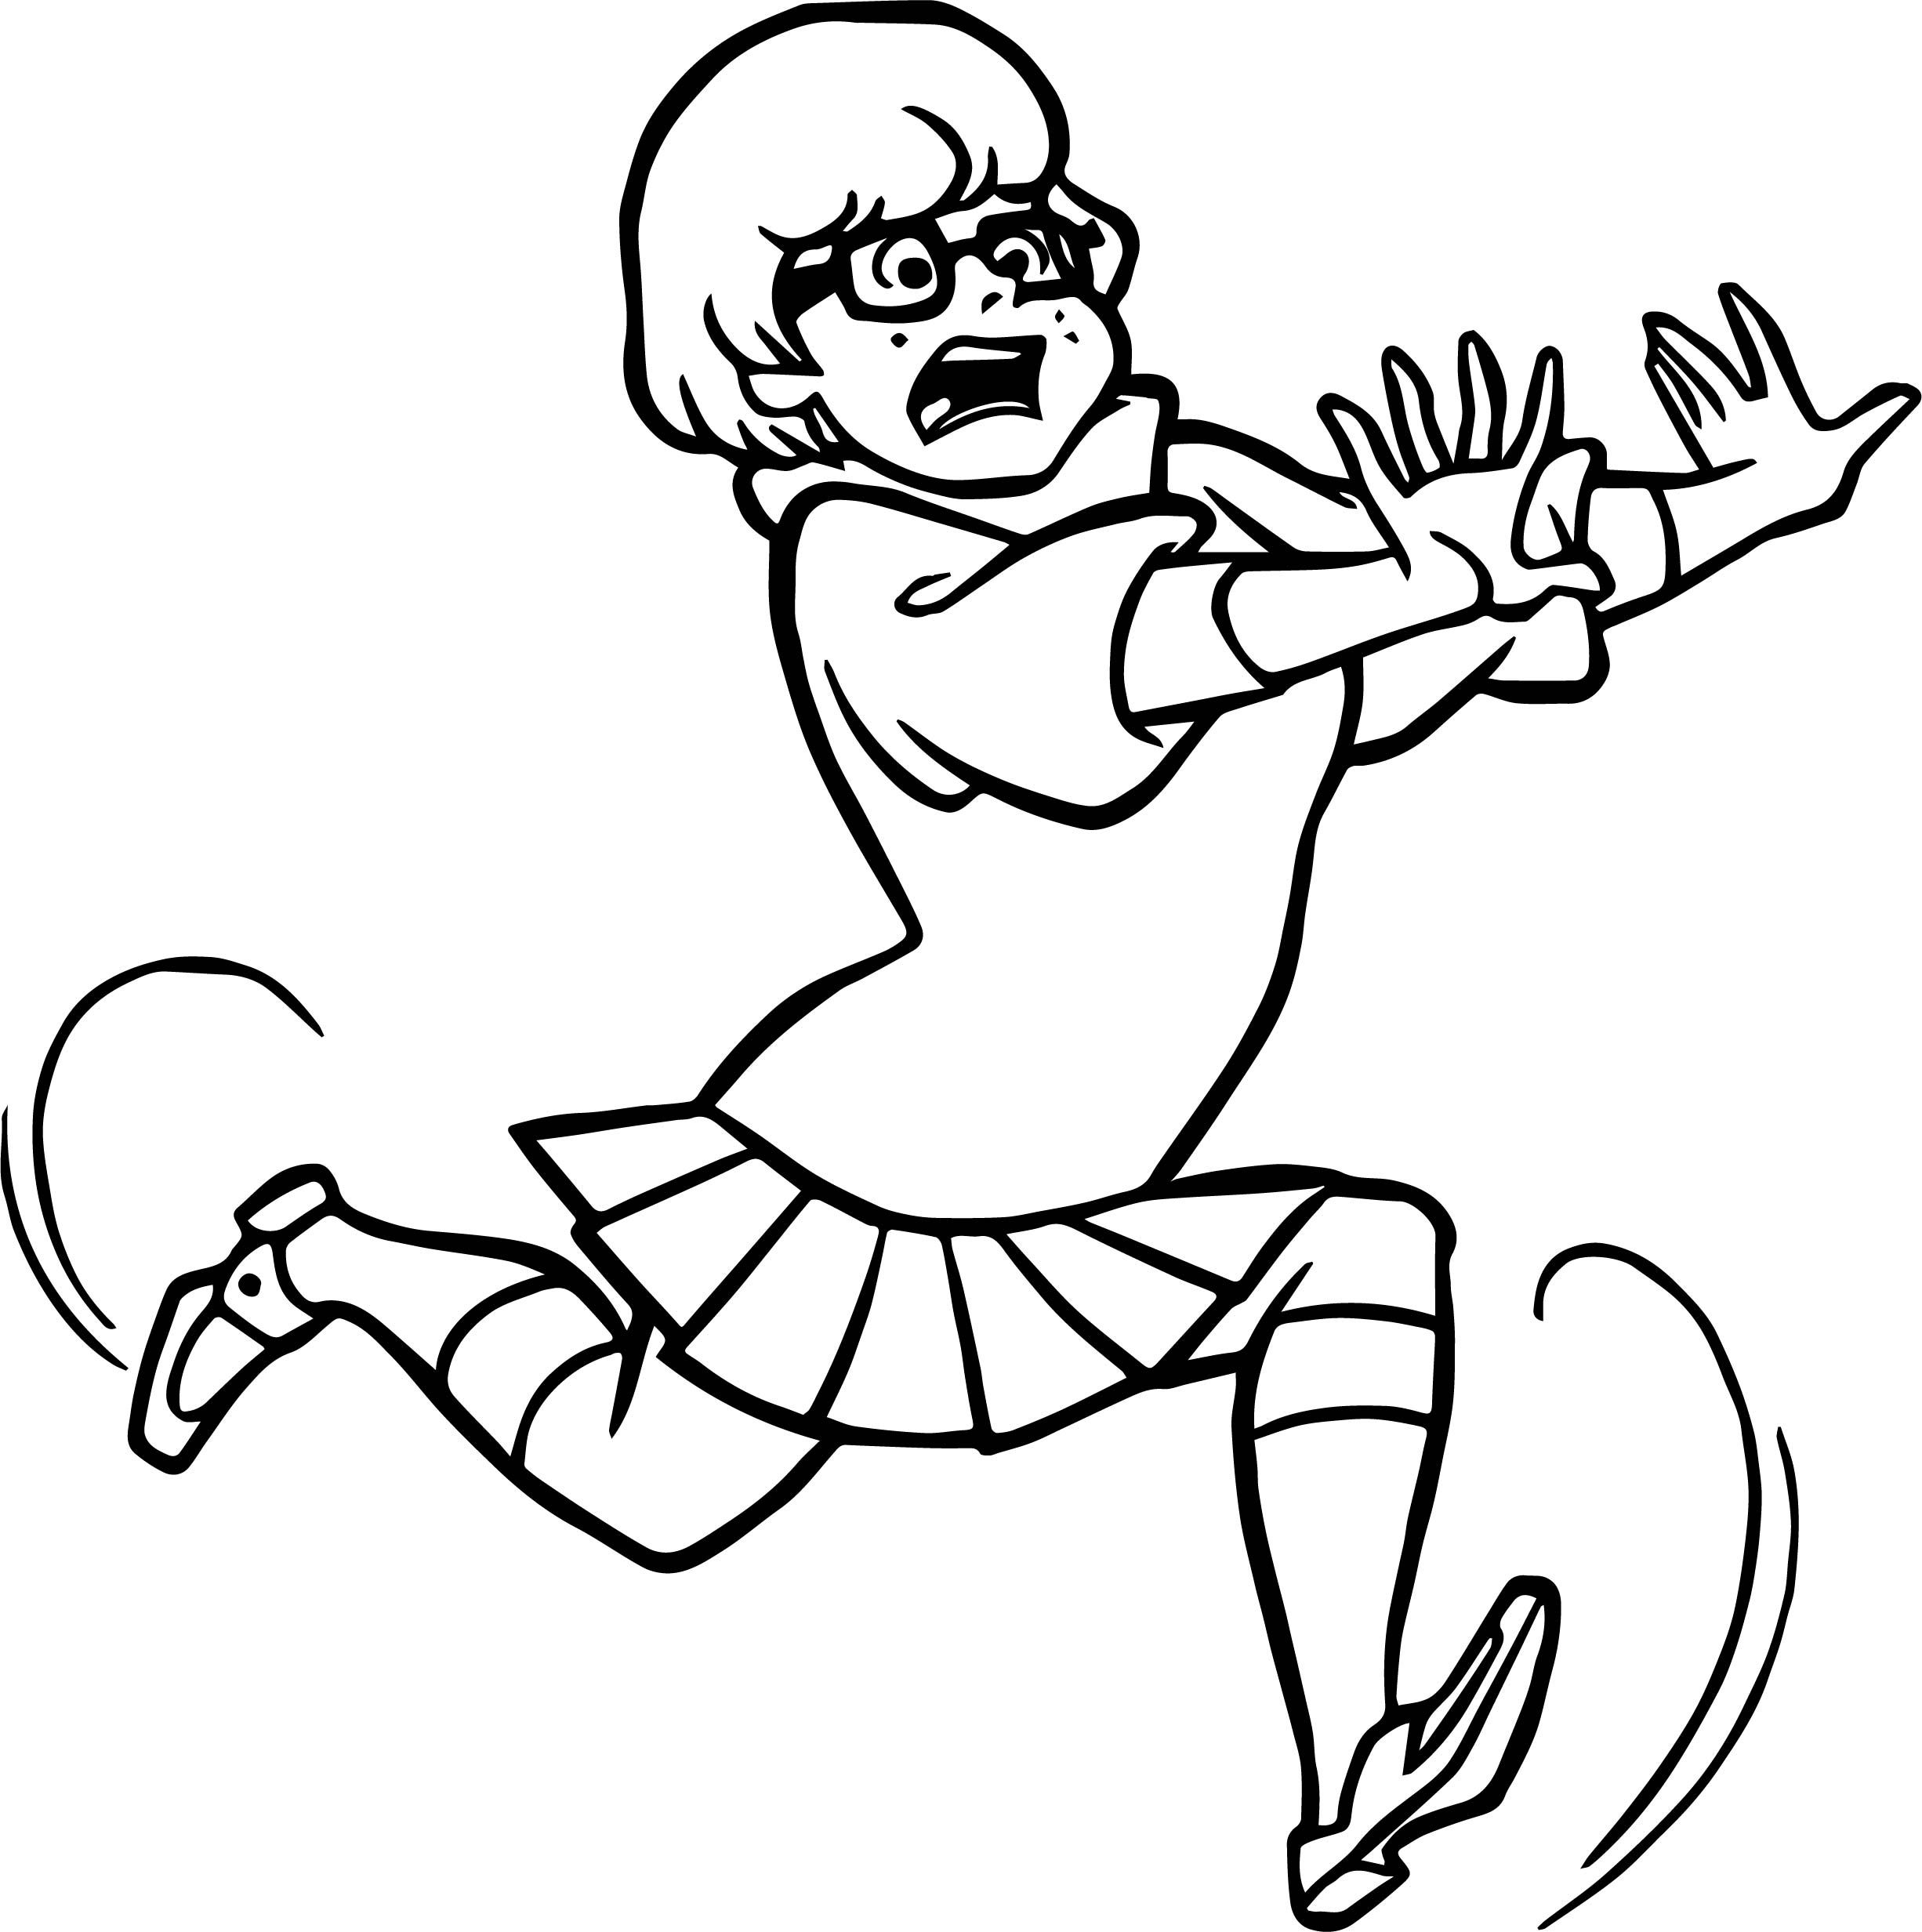 cool Anime Girl Running Coloring Page | wecoloringpage | Pinterest